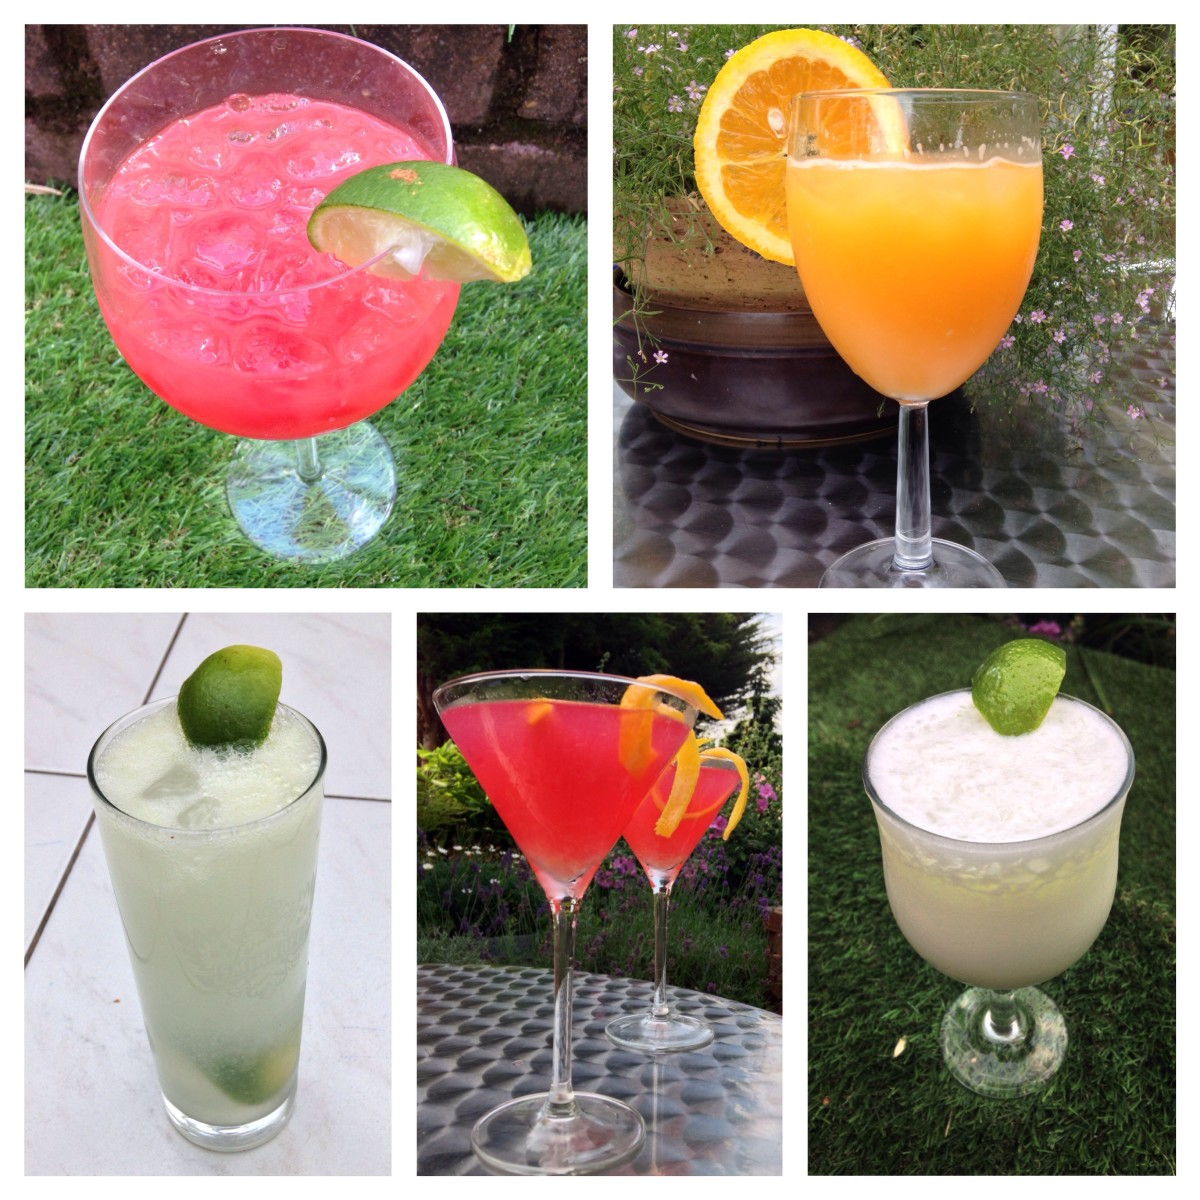 Vodka Drinks, Cocktails and Concoctions: 10 Refreshing Summer Recipes